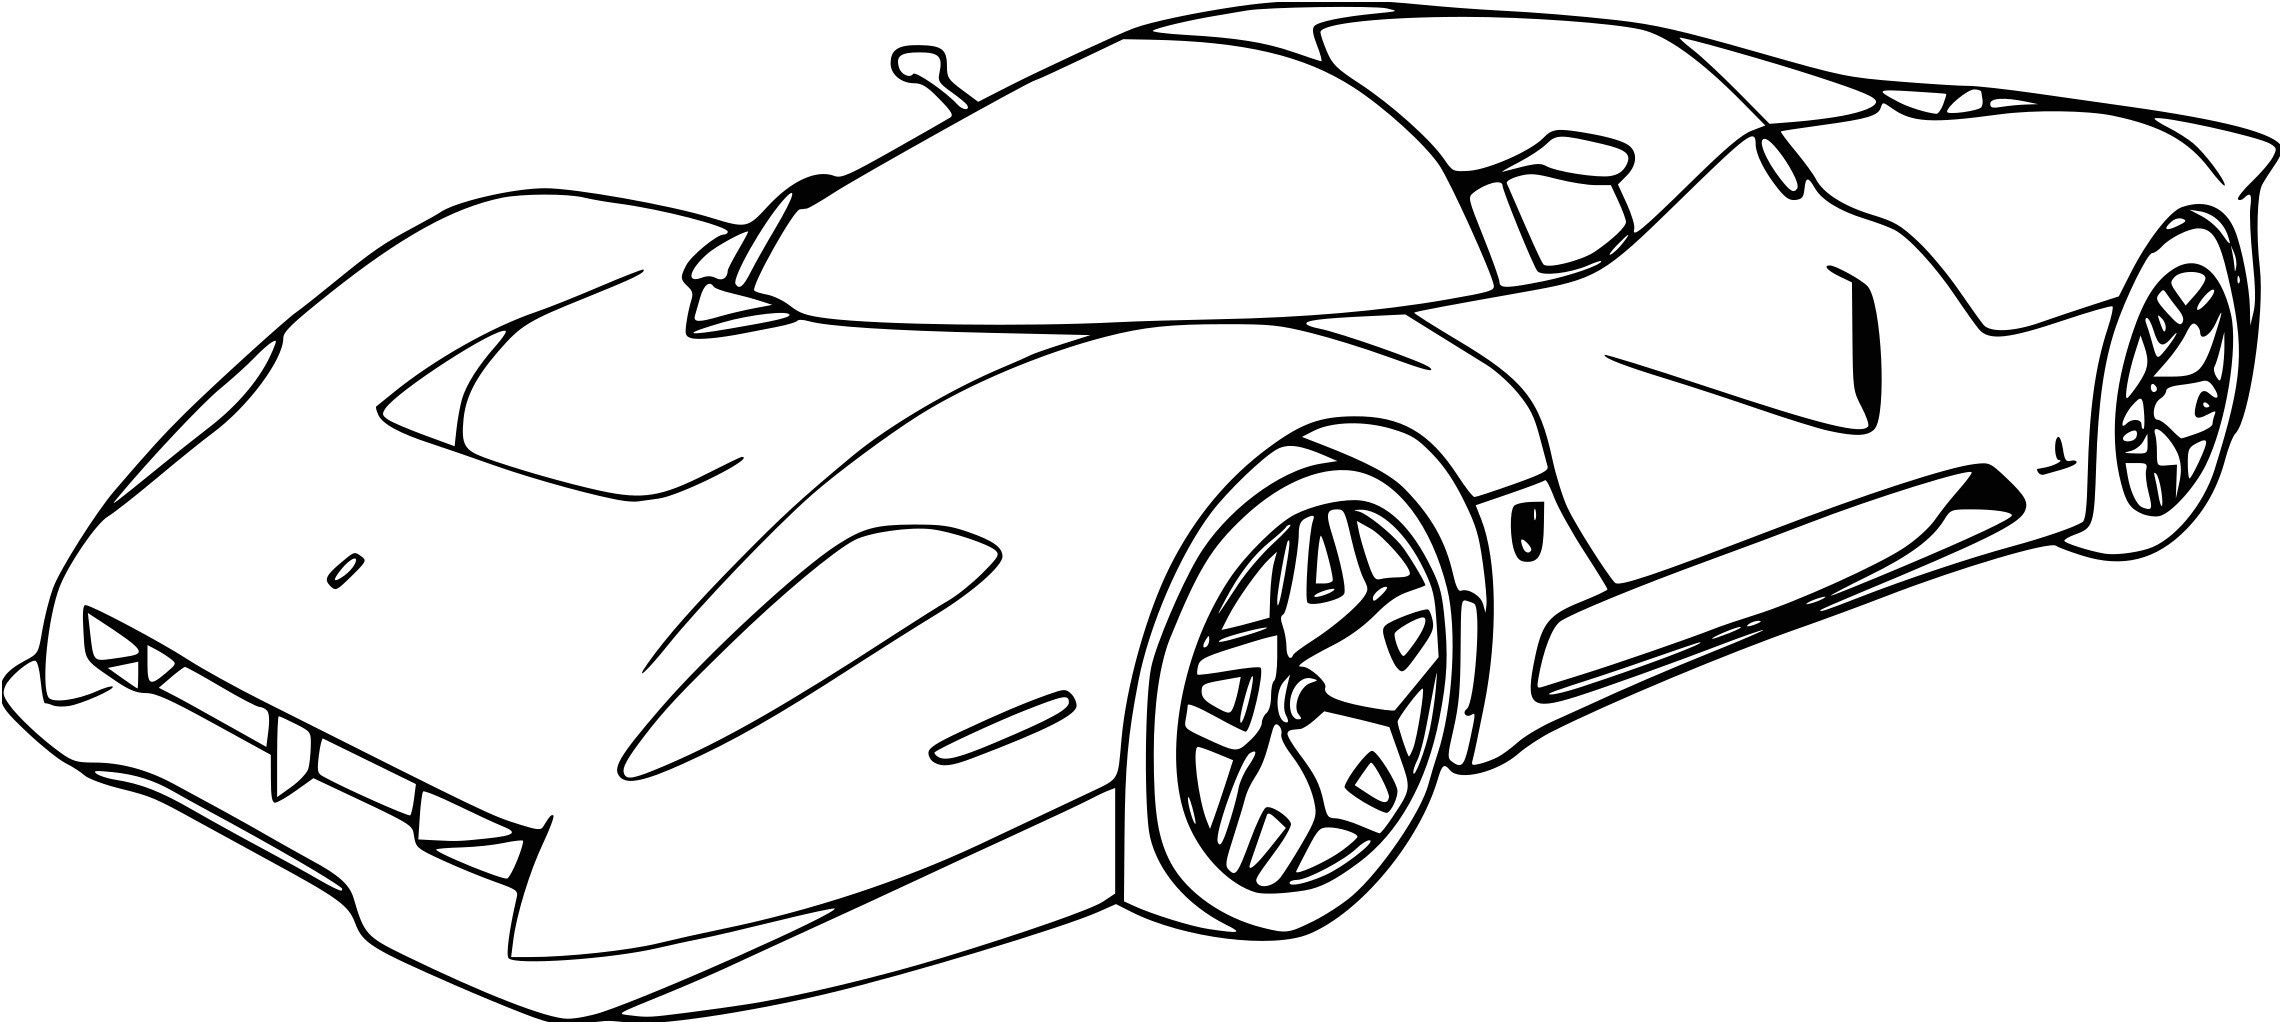 12 Genial Coloriage Voiture Fast And Furious Stock Coloriage